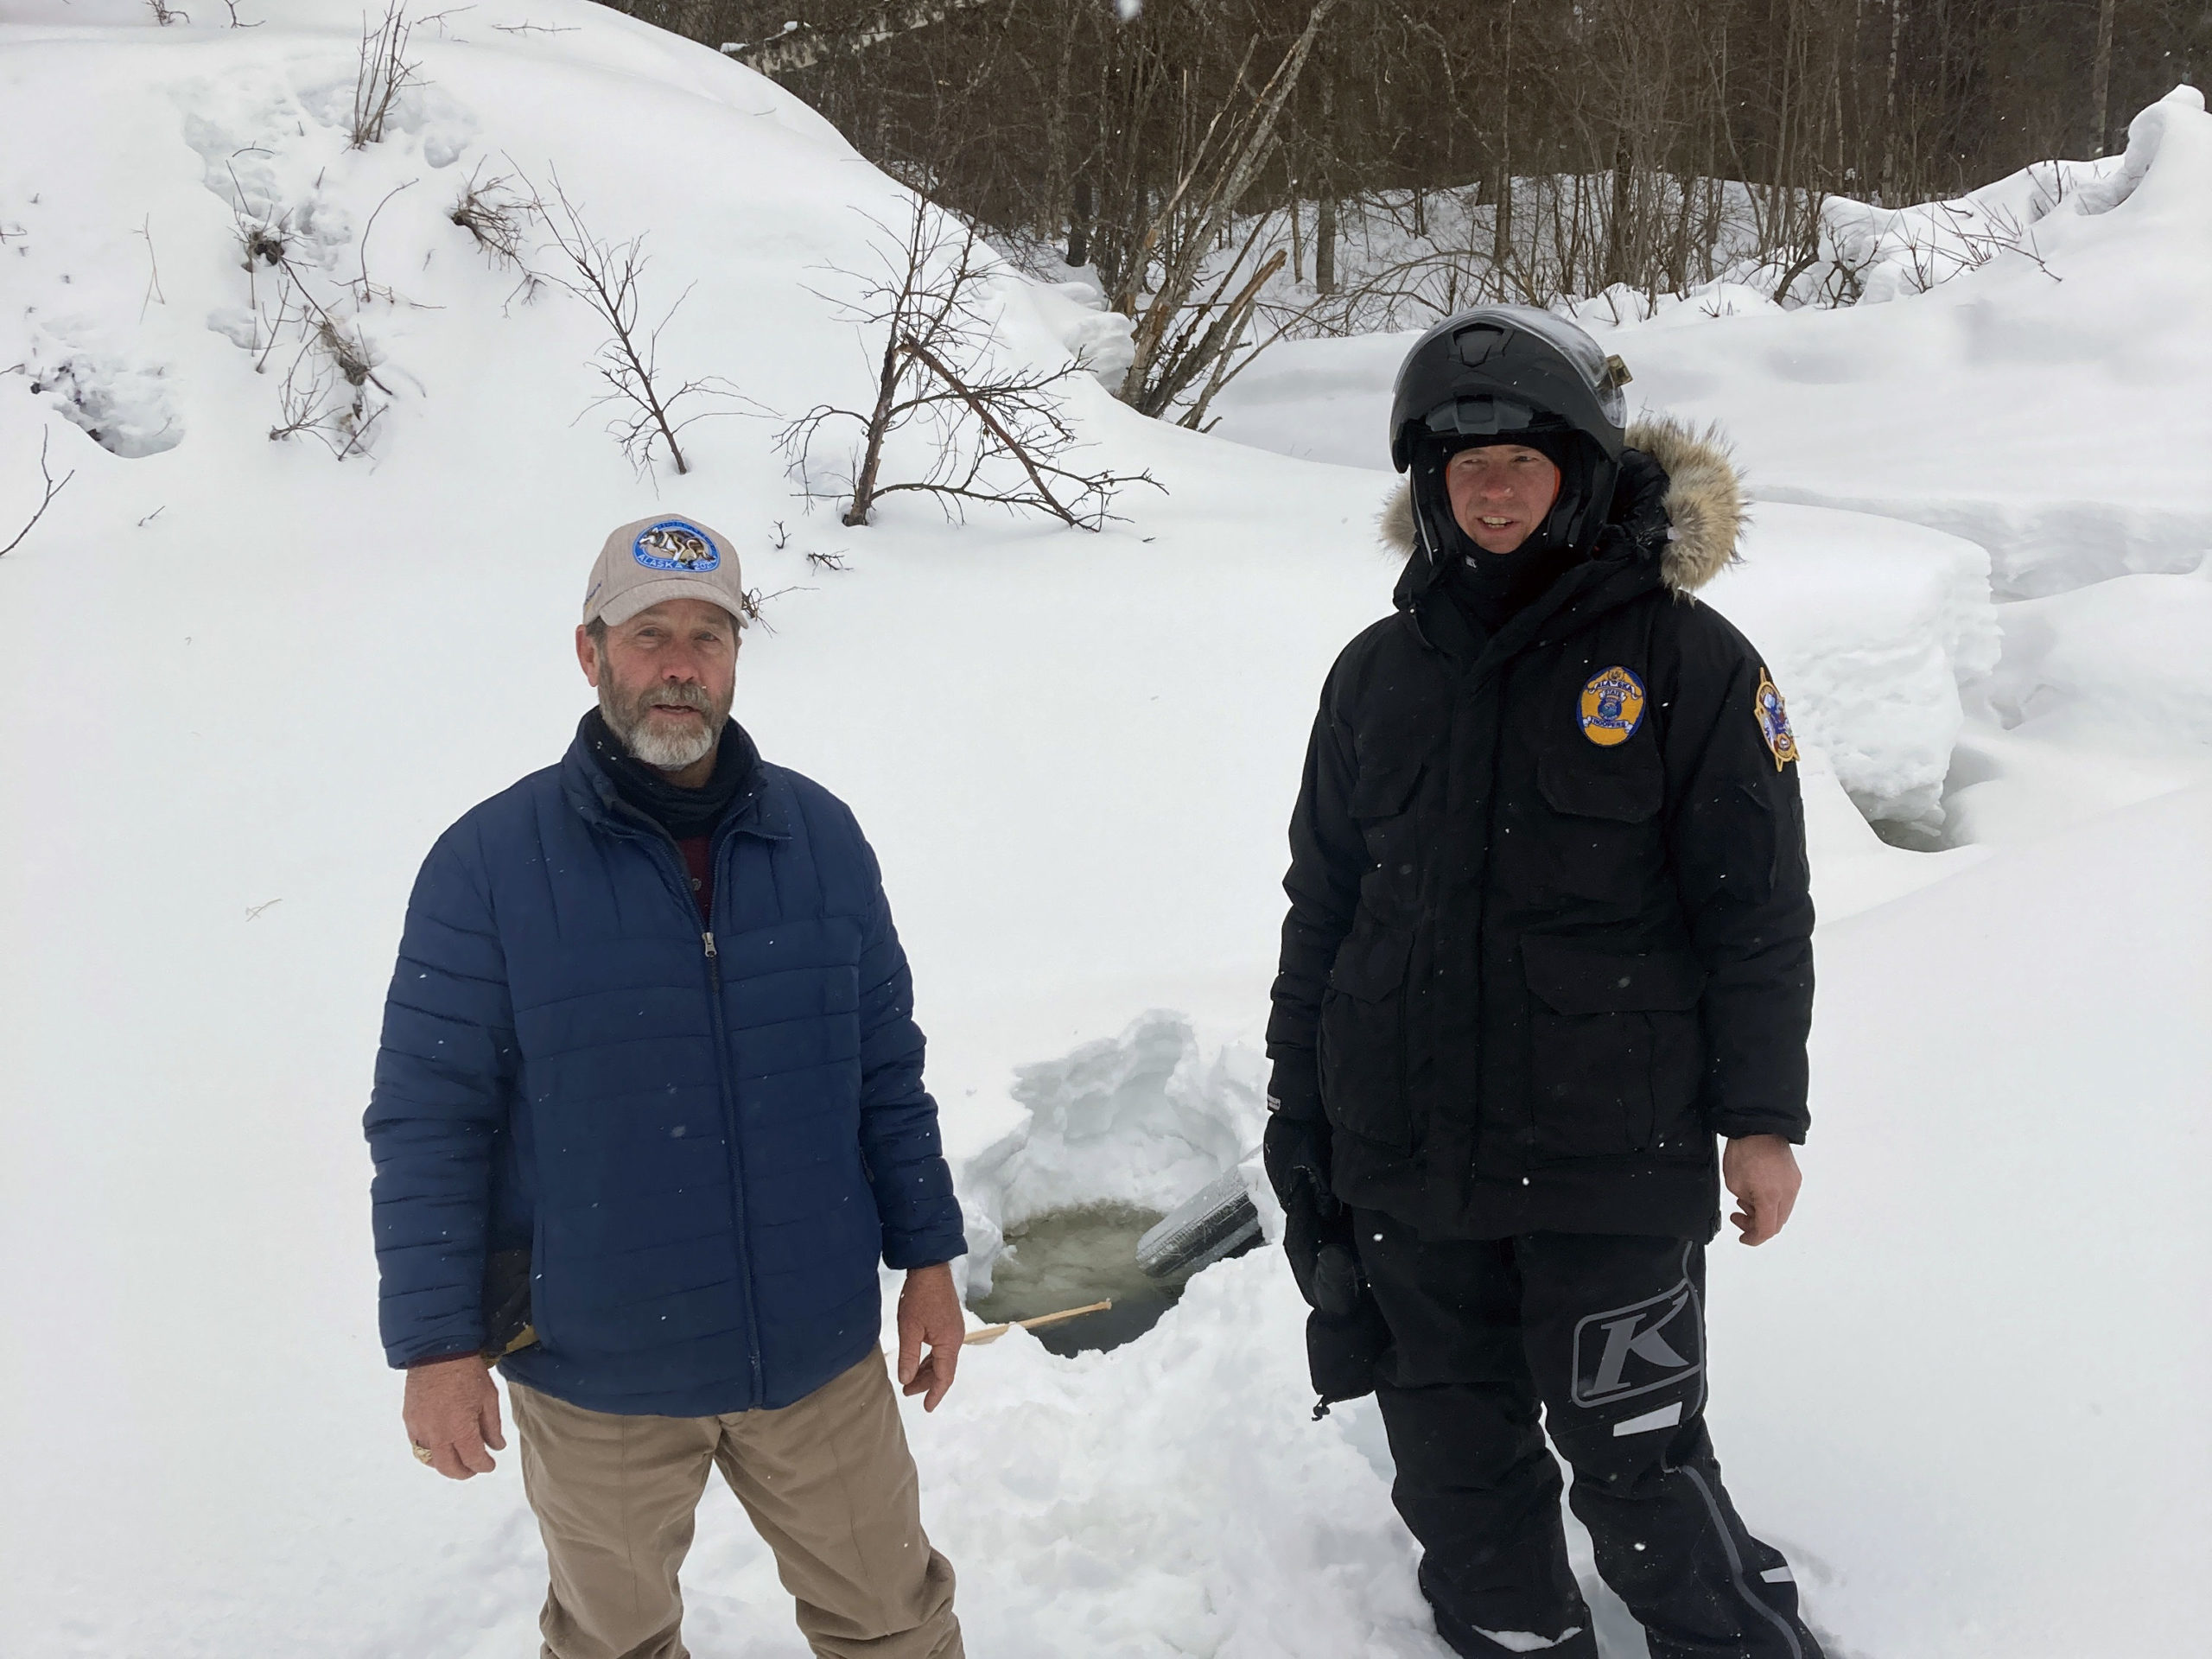 Two men in winter clothes stand in deep snow